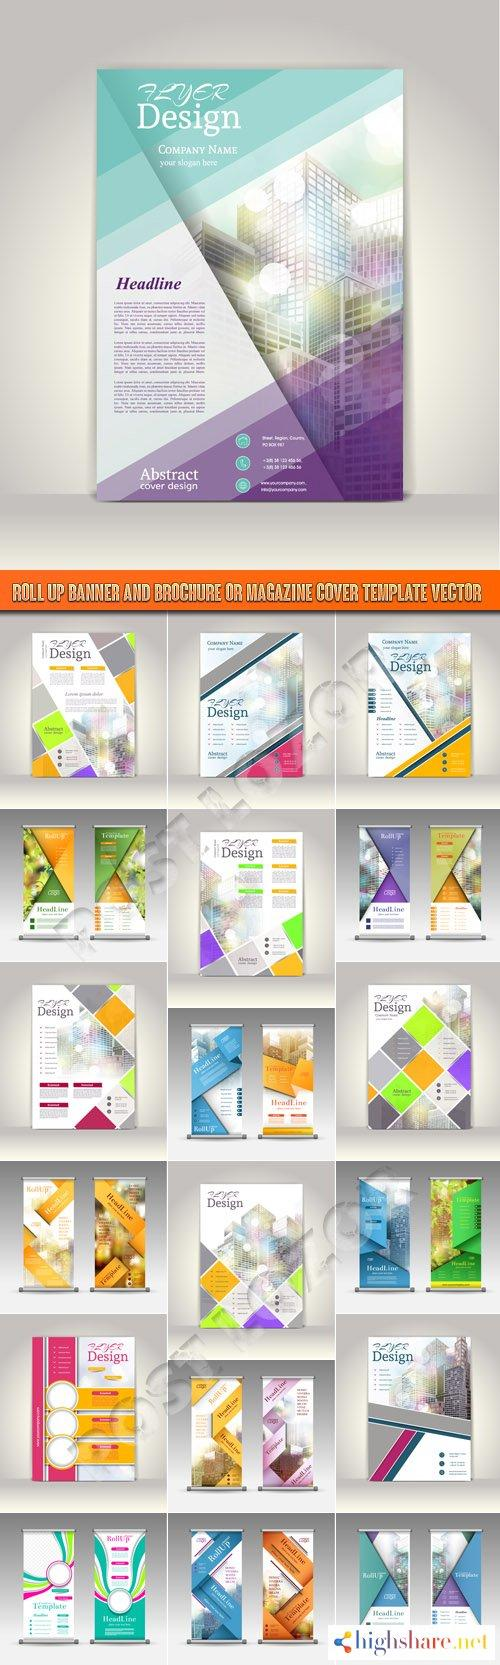 roll up banner and brochure or magazine cover template vector 5f3fb9fb83ea6 - Roll up banner and brochure or magazine cover template vector